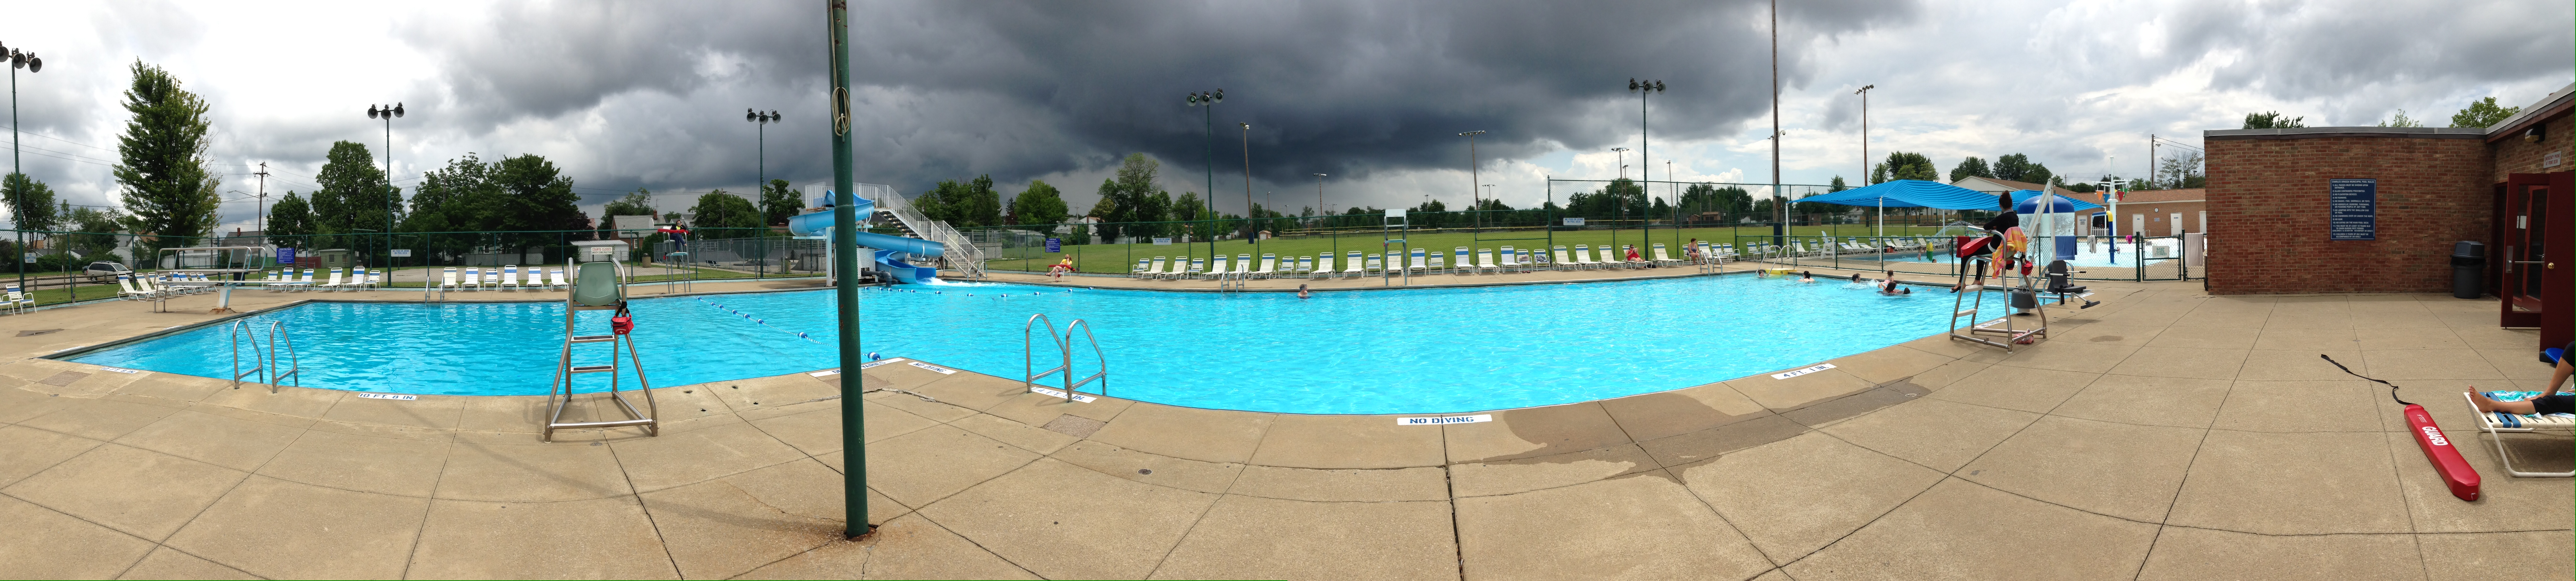 dragga pool mayfield heights oh official website